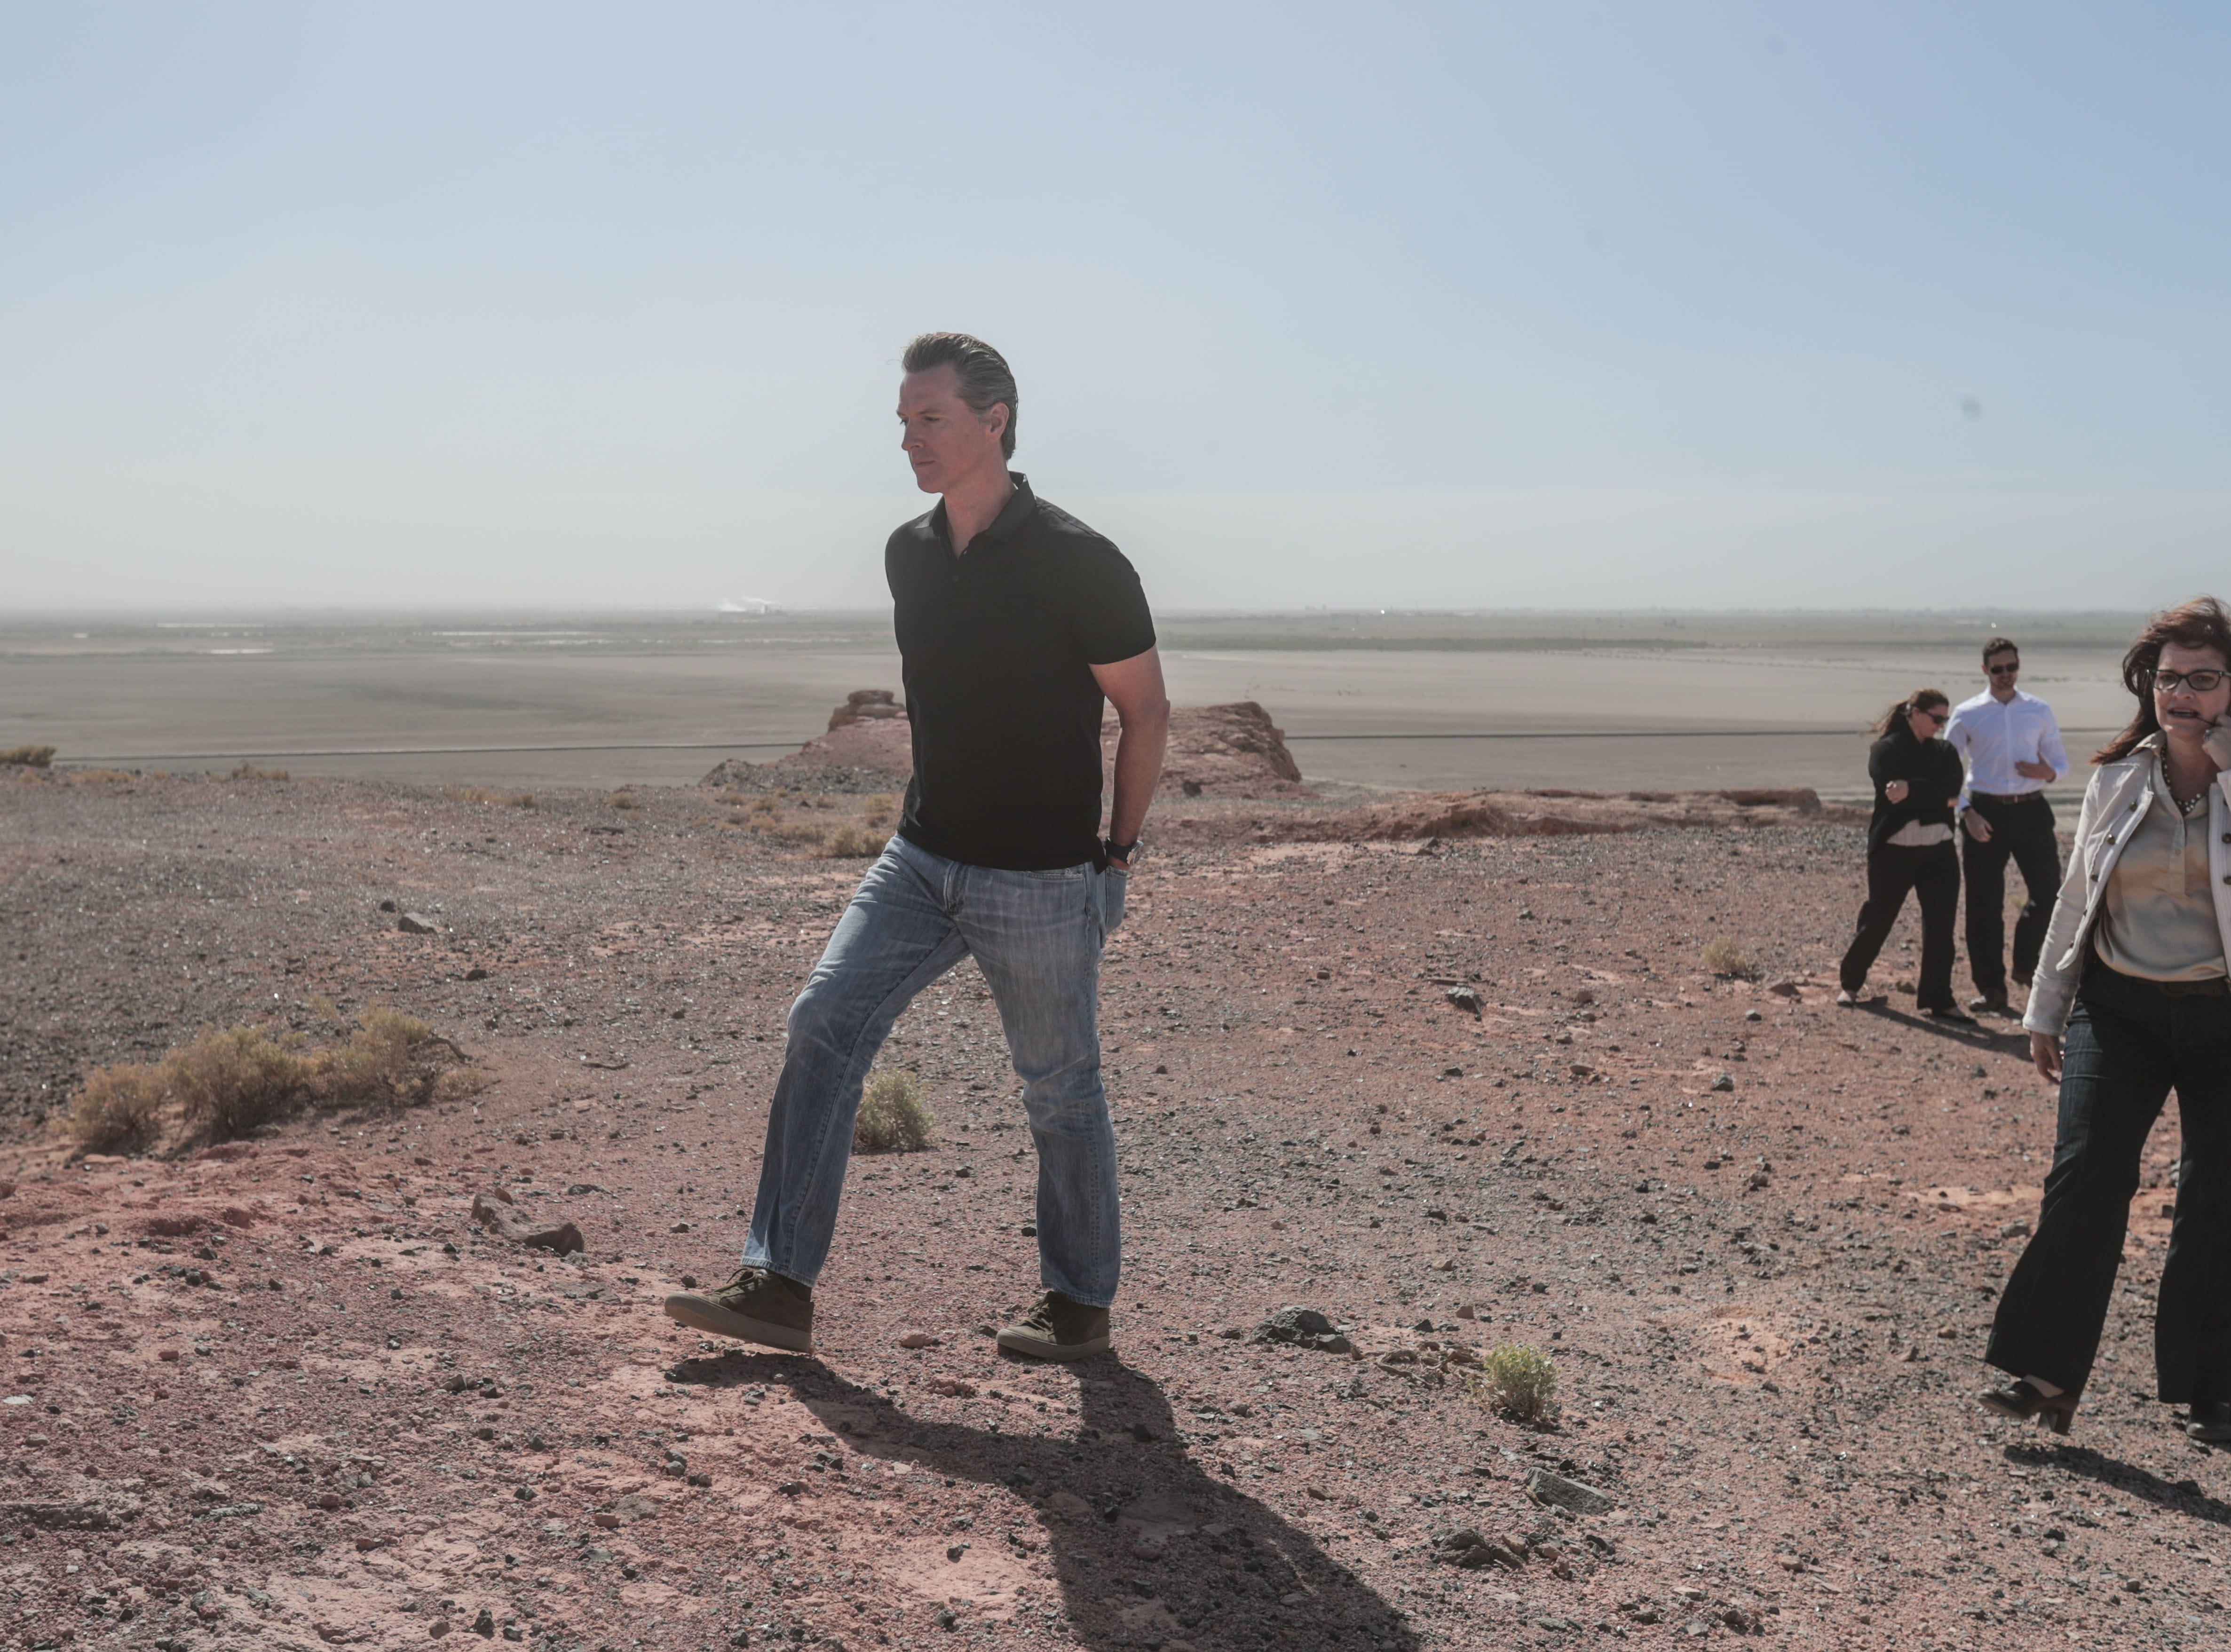 Gavin Newsom looks at areas around the Salton Sea from a hilltop in Calipatria on April 19, 2018. Newsom, who was then lieutenant governor, heard about ecological, environmental, and public health challenges facing the region on his visit.